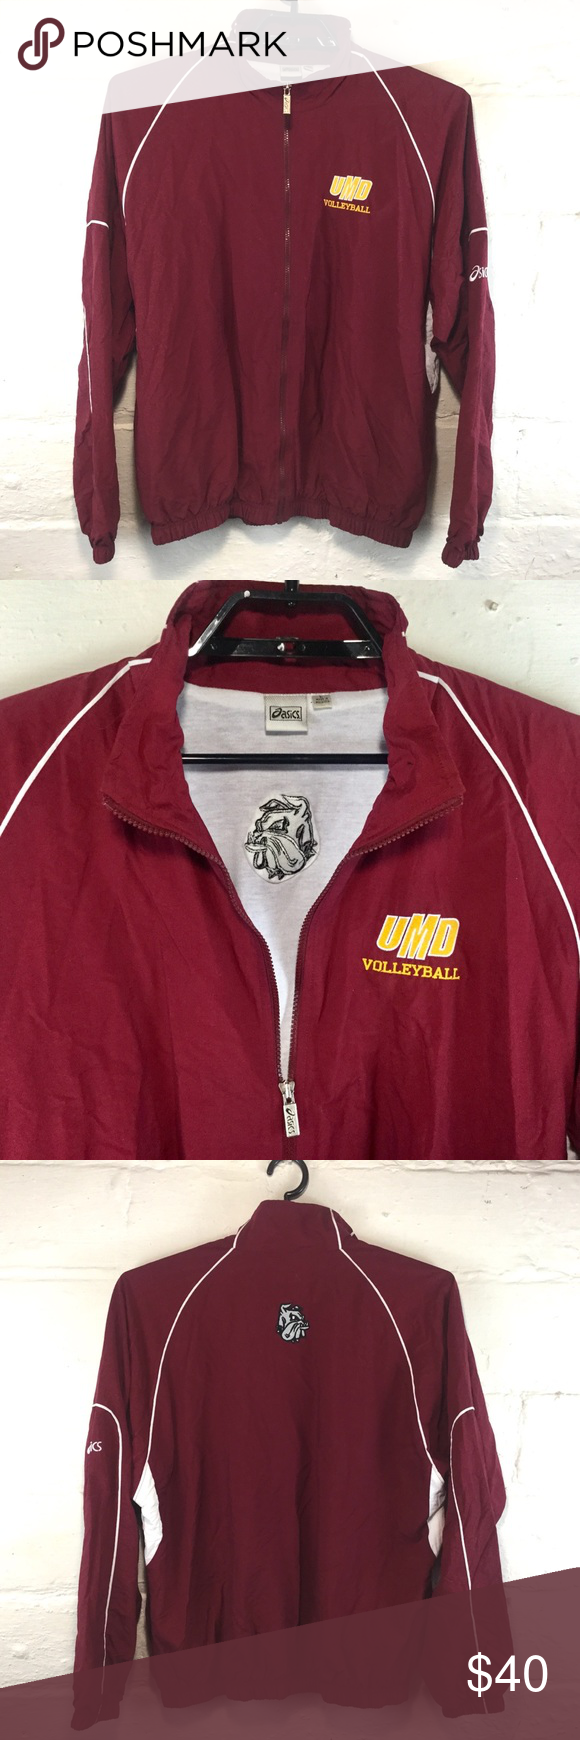 Umd Volleyball Asics Offical Warm Up Jacket Size L Jackets Asics Volleyball Warm Ups